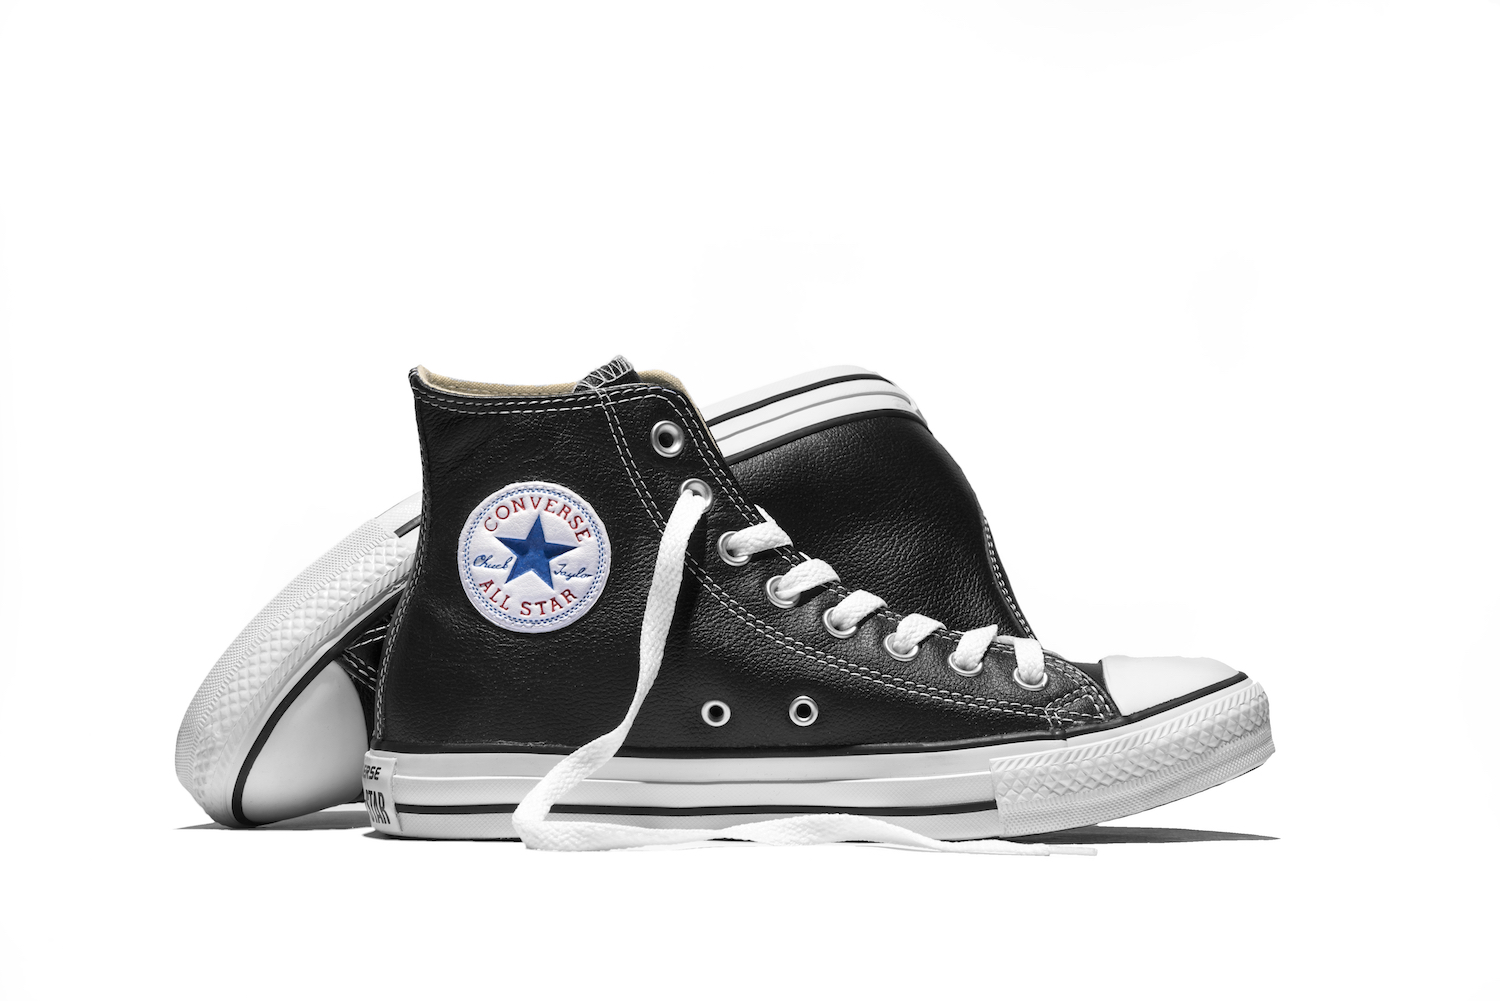 b54f5e5547ab CONVERSE CHUCK TAYLOR ALL STAR LEATHER NOW AVAILABLE AT CONVERSE ...